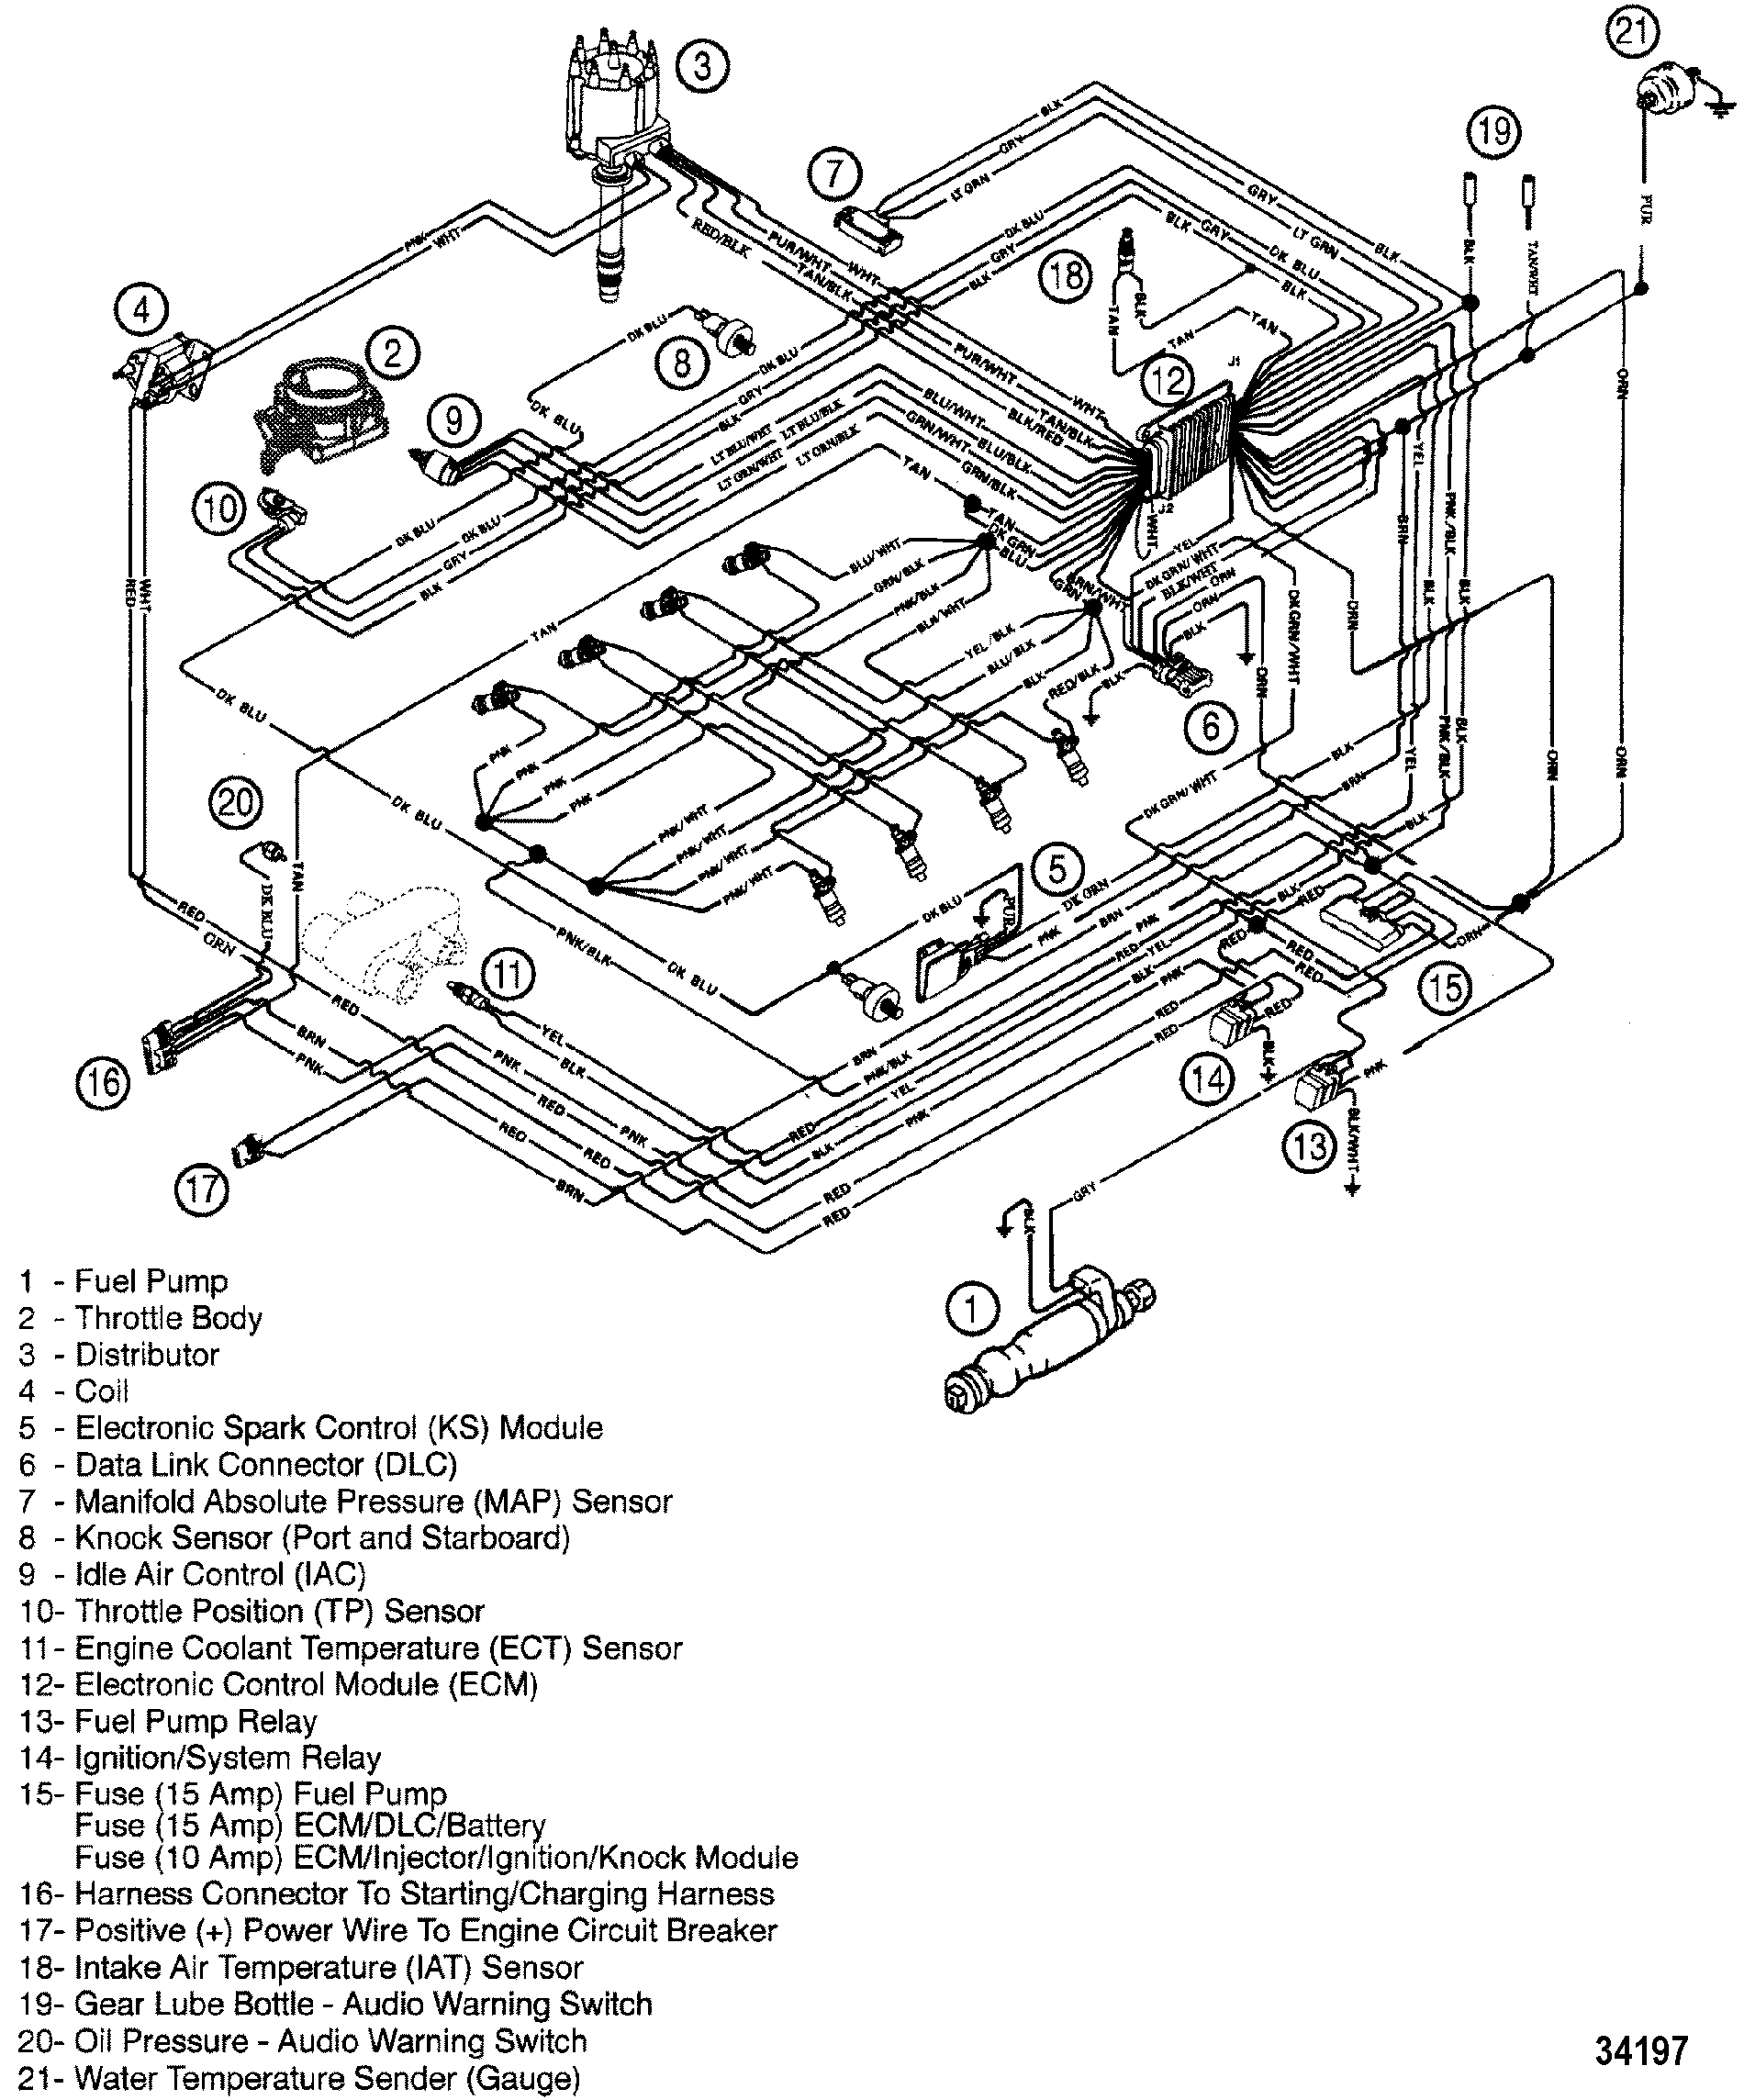 Mercruiser 5 0 Wiring Harness Diagram - DIY Wiring Diagrams •